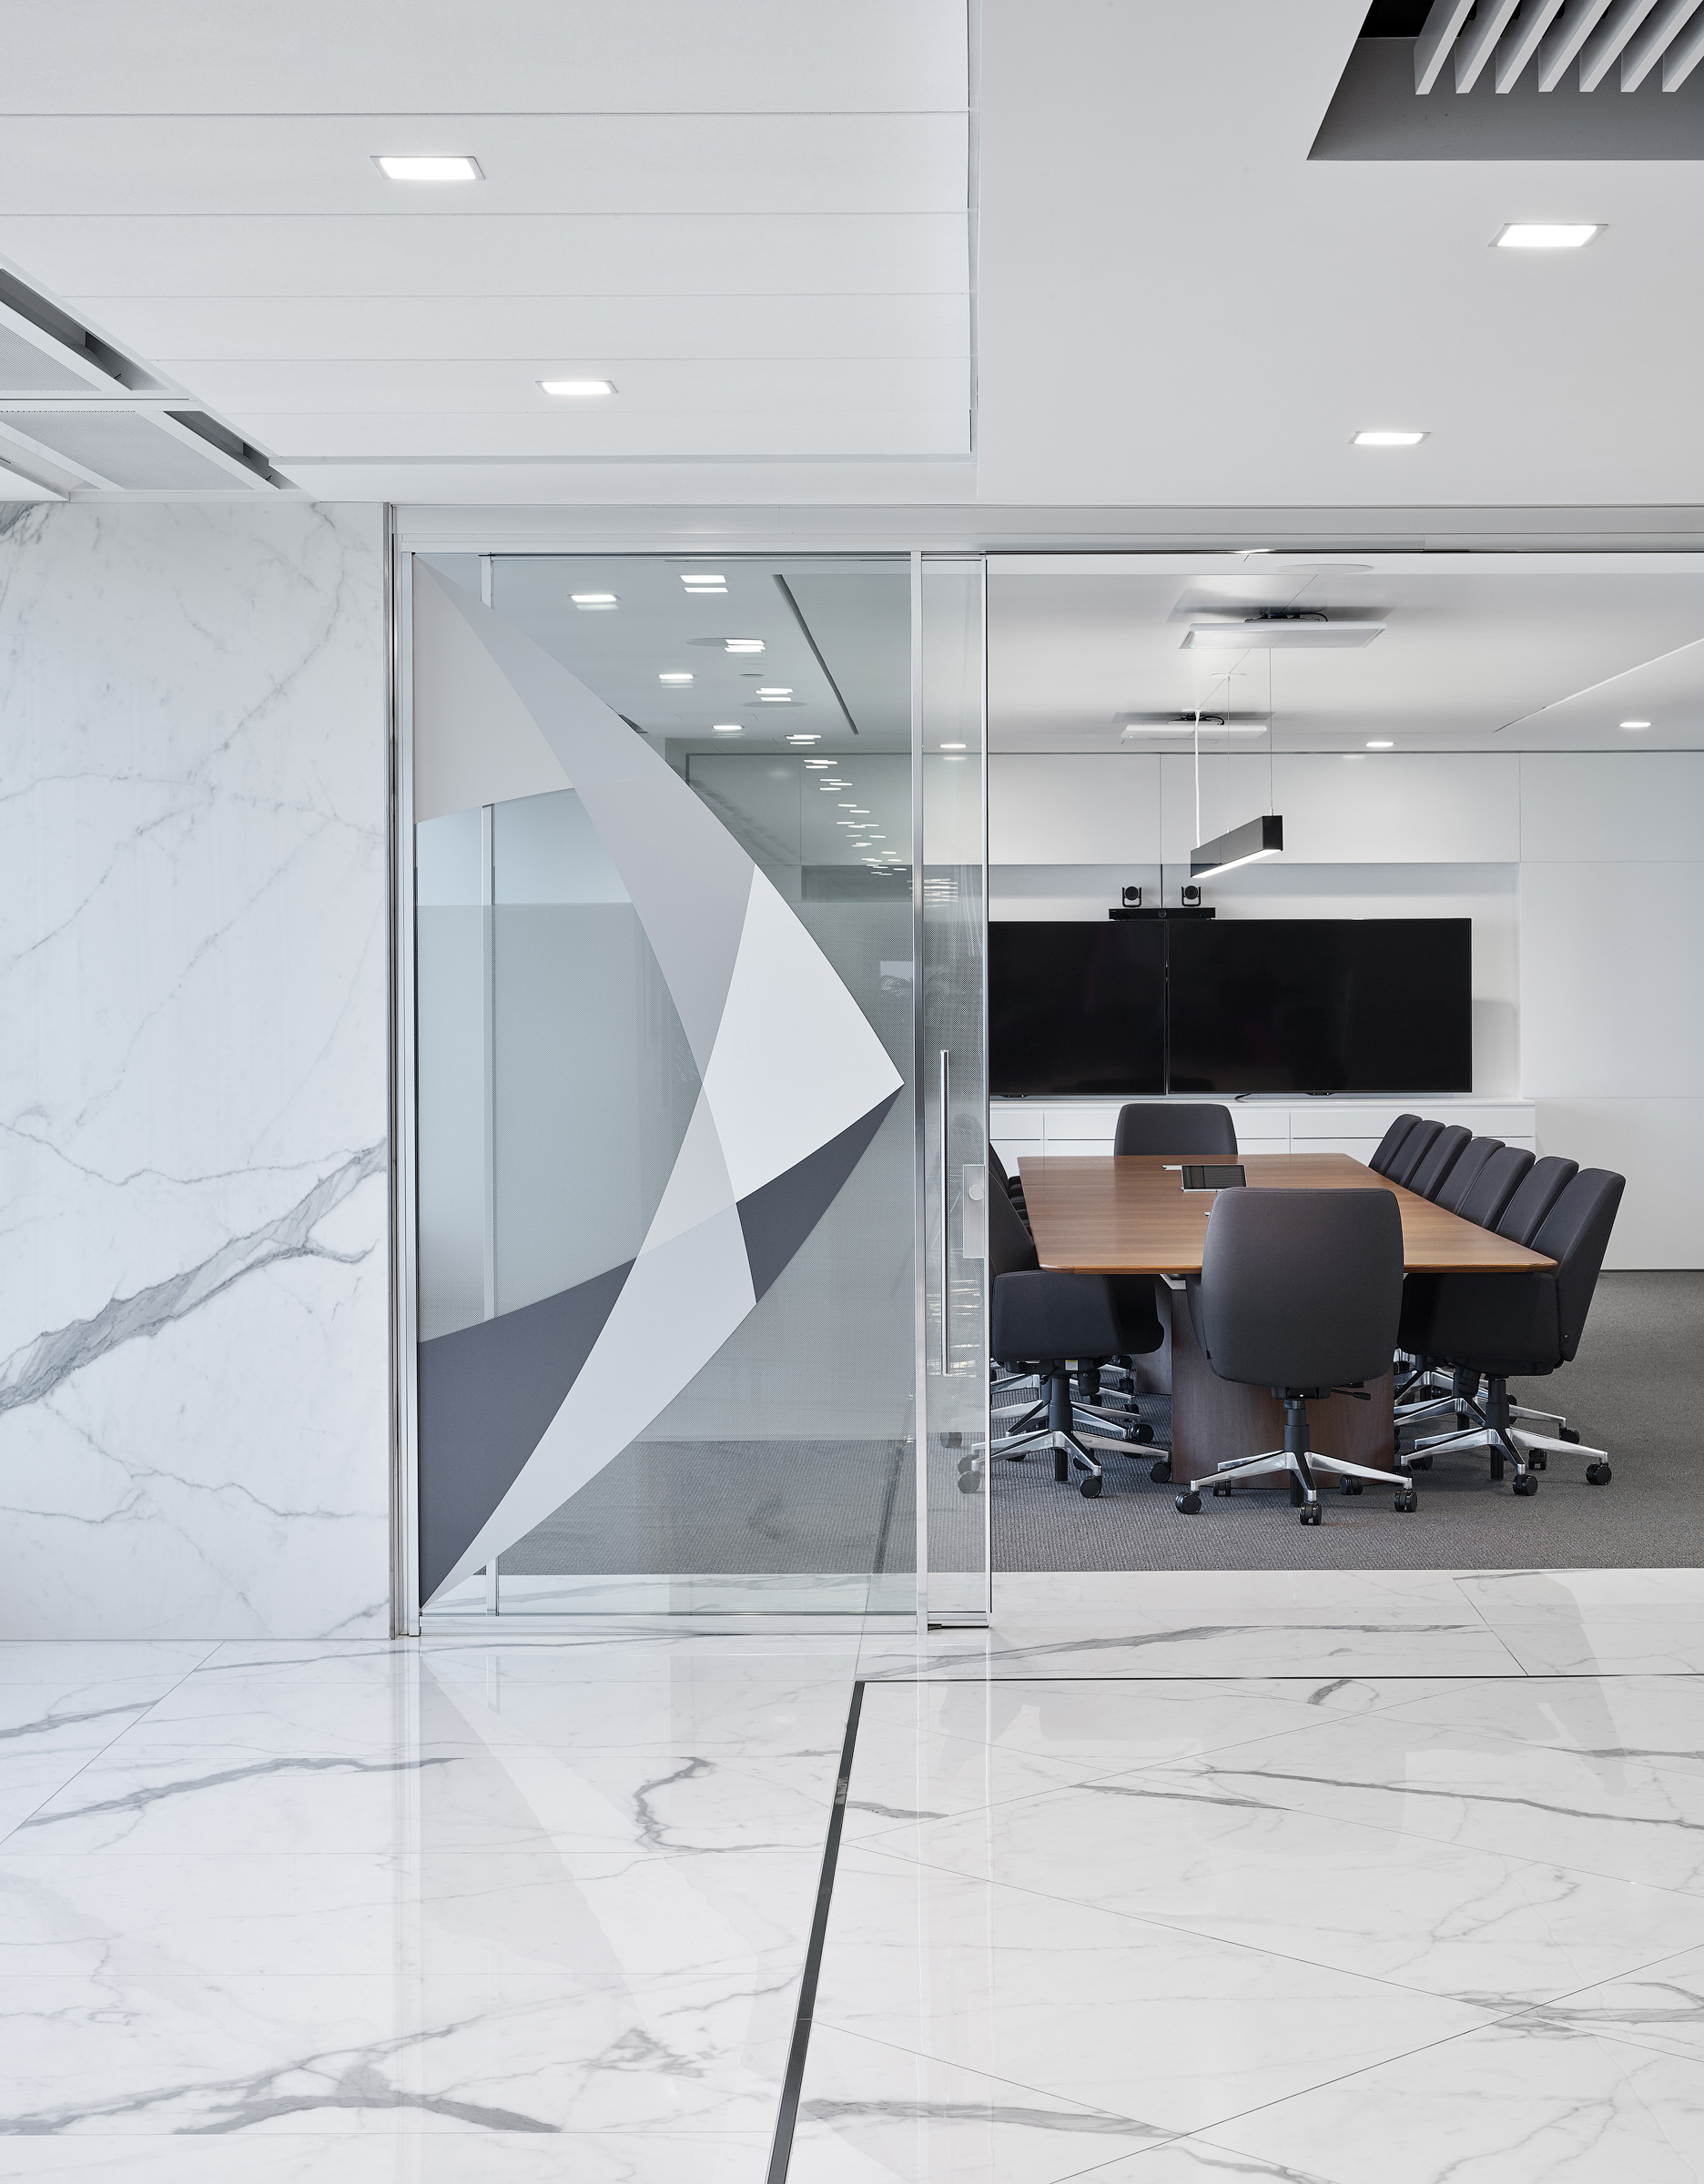 QuadReal view into meeting room with wood table through glass door with geometric pattern. Marble walls and floors outside.